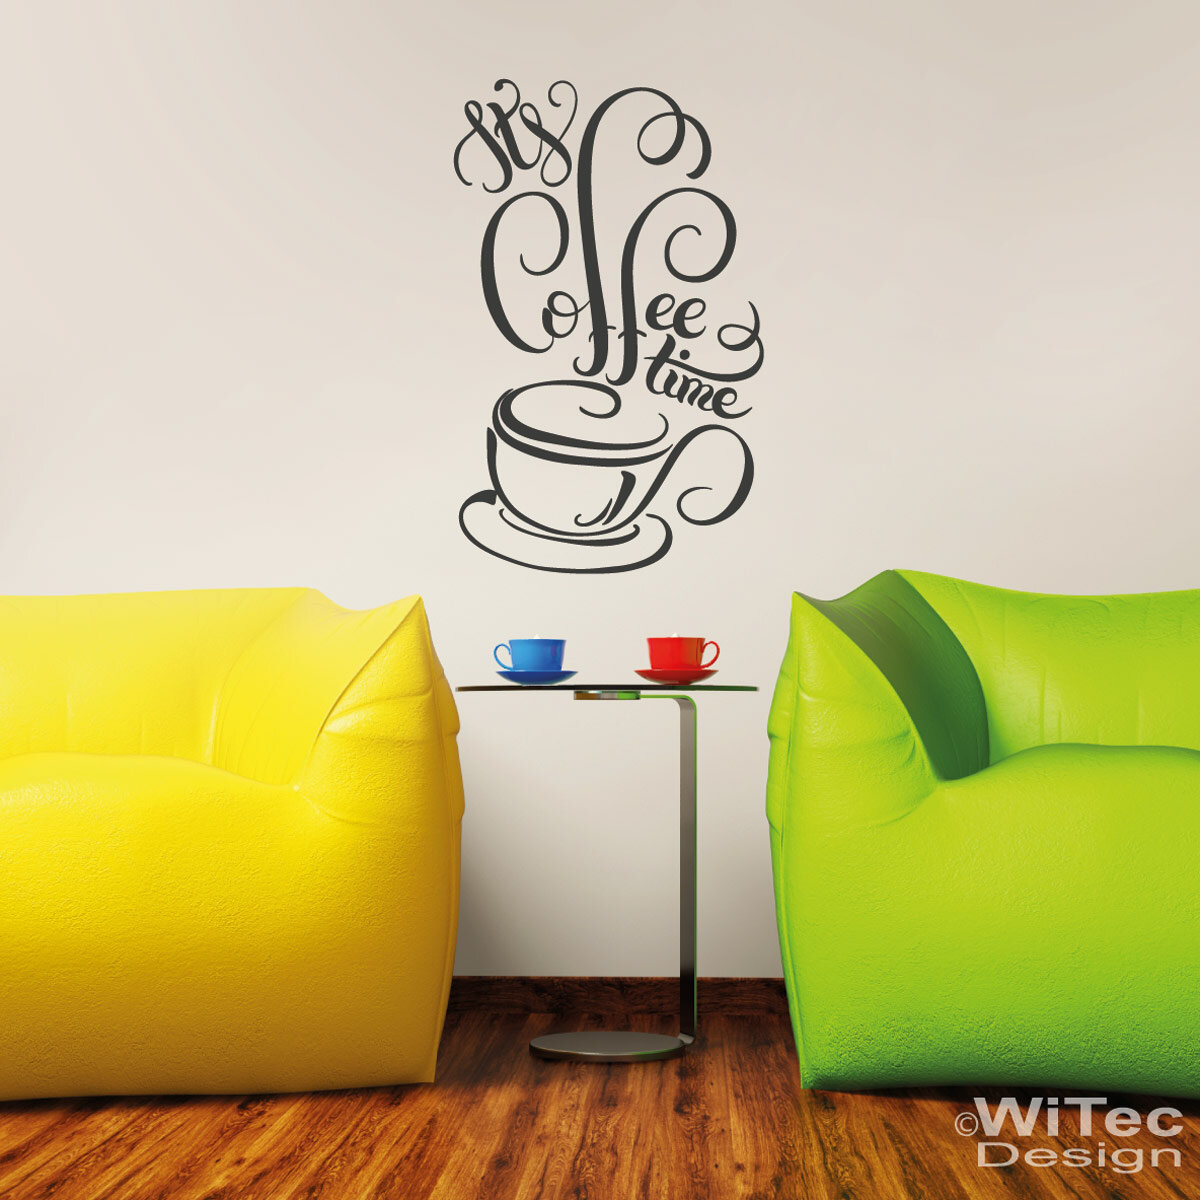 wandtattoo its coffee time wandaufkleber k che kaffee. Black Bedroom Furniture Sets. Home Design Ideas